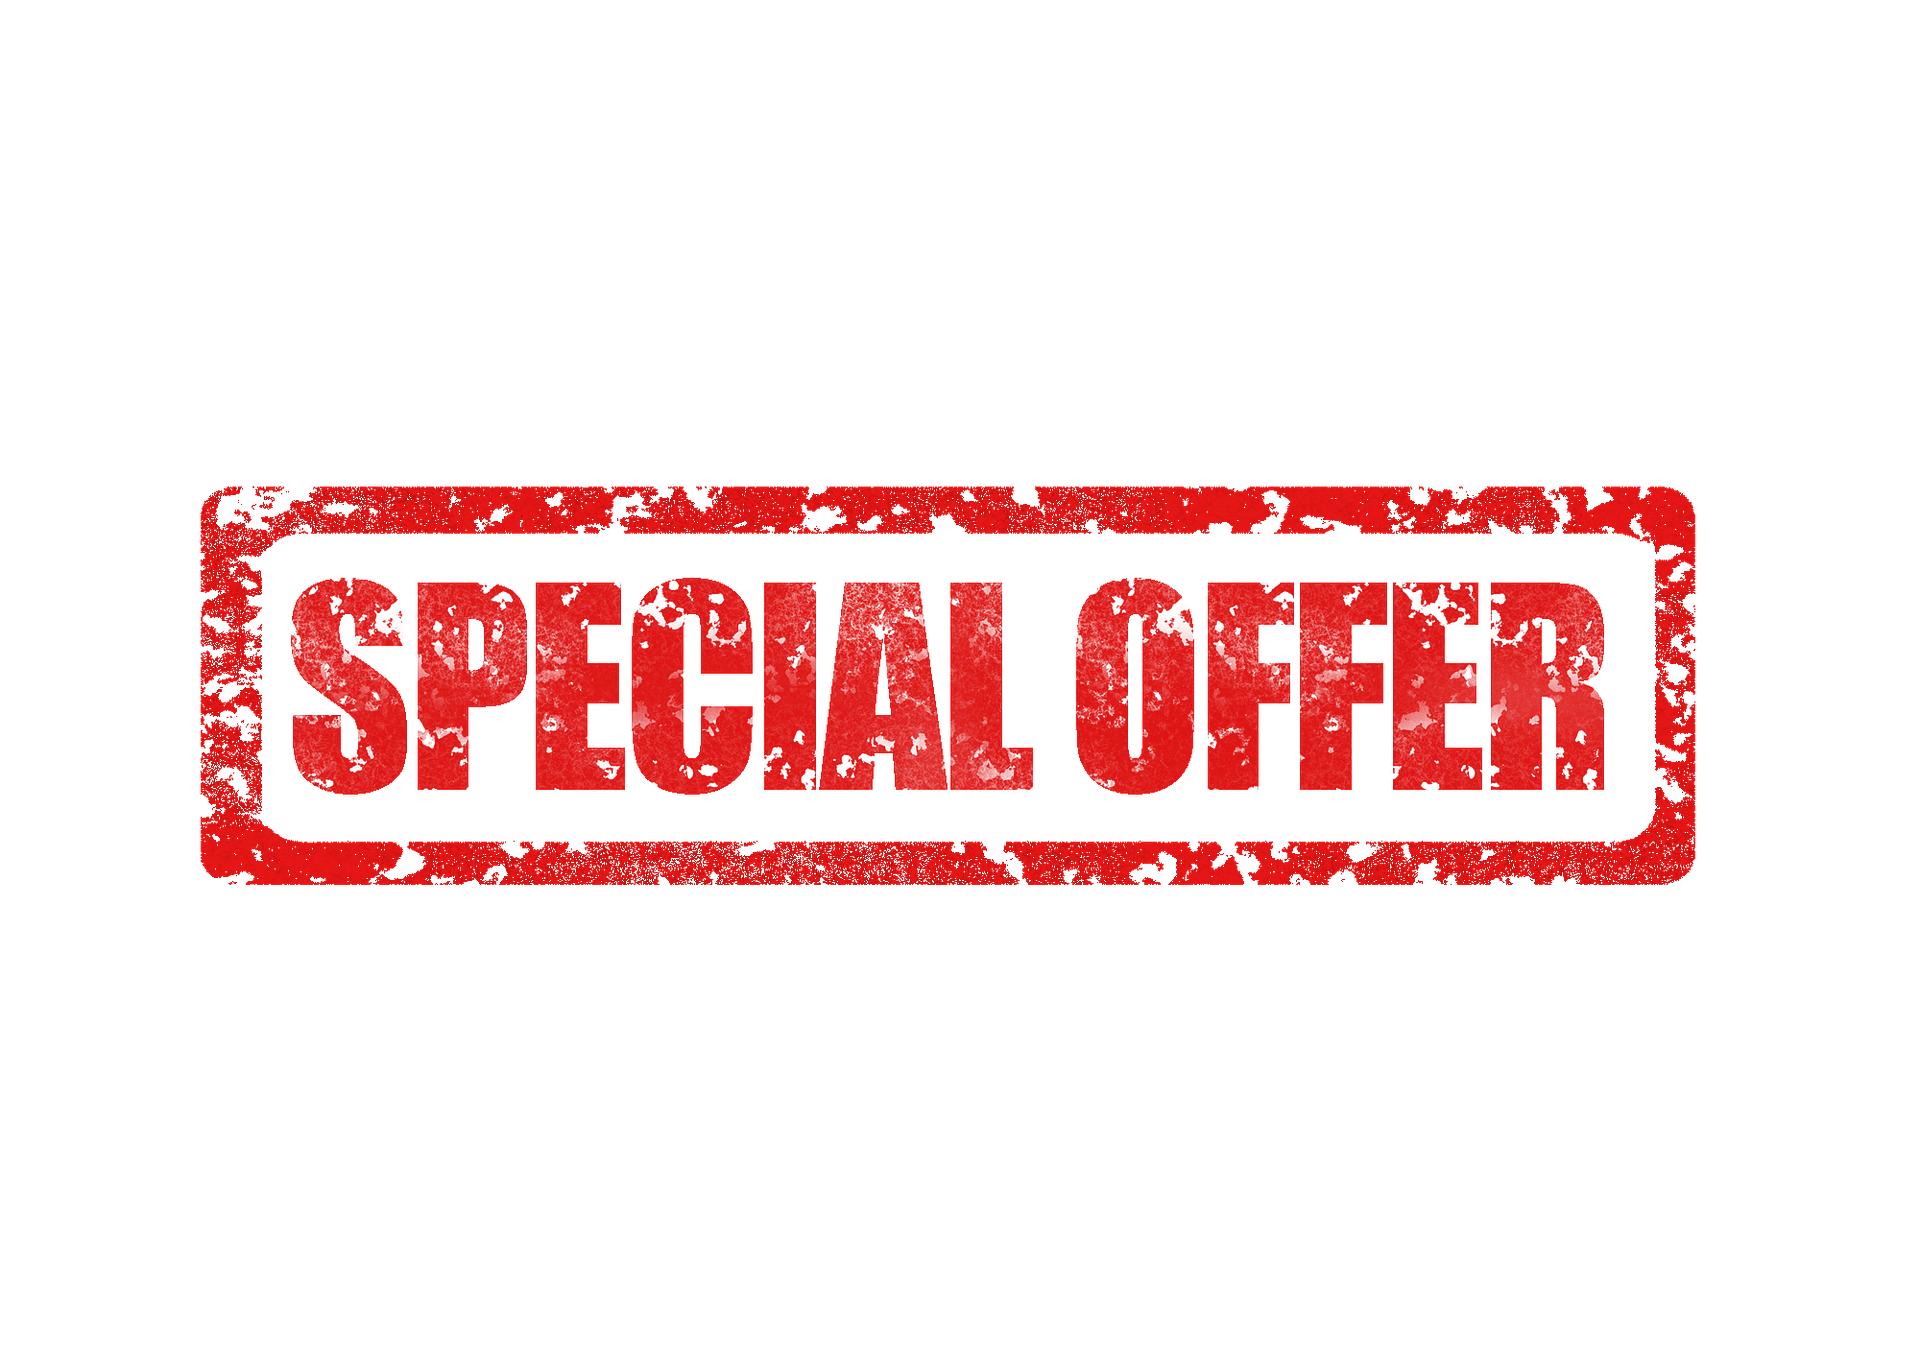 Banner in red illustrated like a rubber stamp saying Special Offer